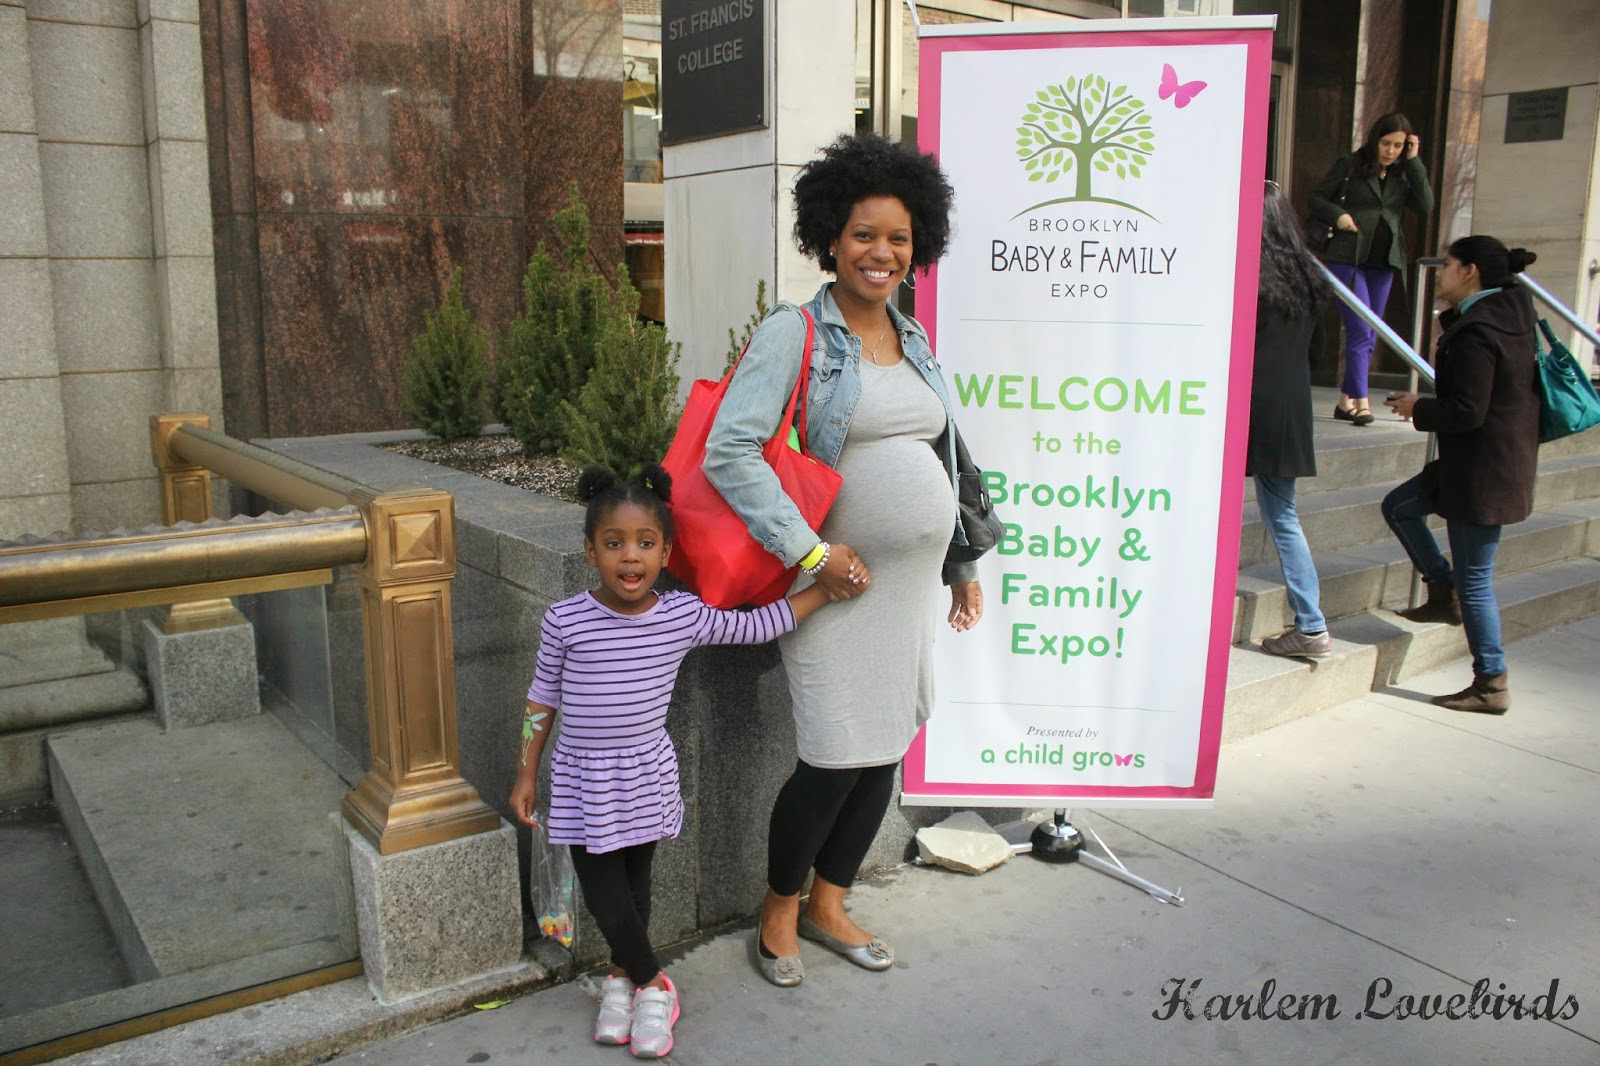 Harlem Lovebirds Lovebirds At Brooklyn Baby Family Expo 2014